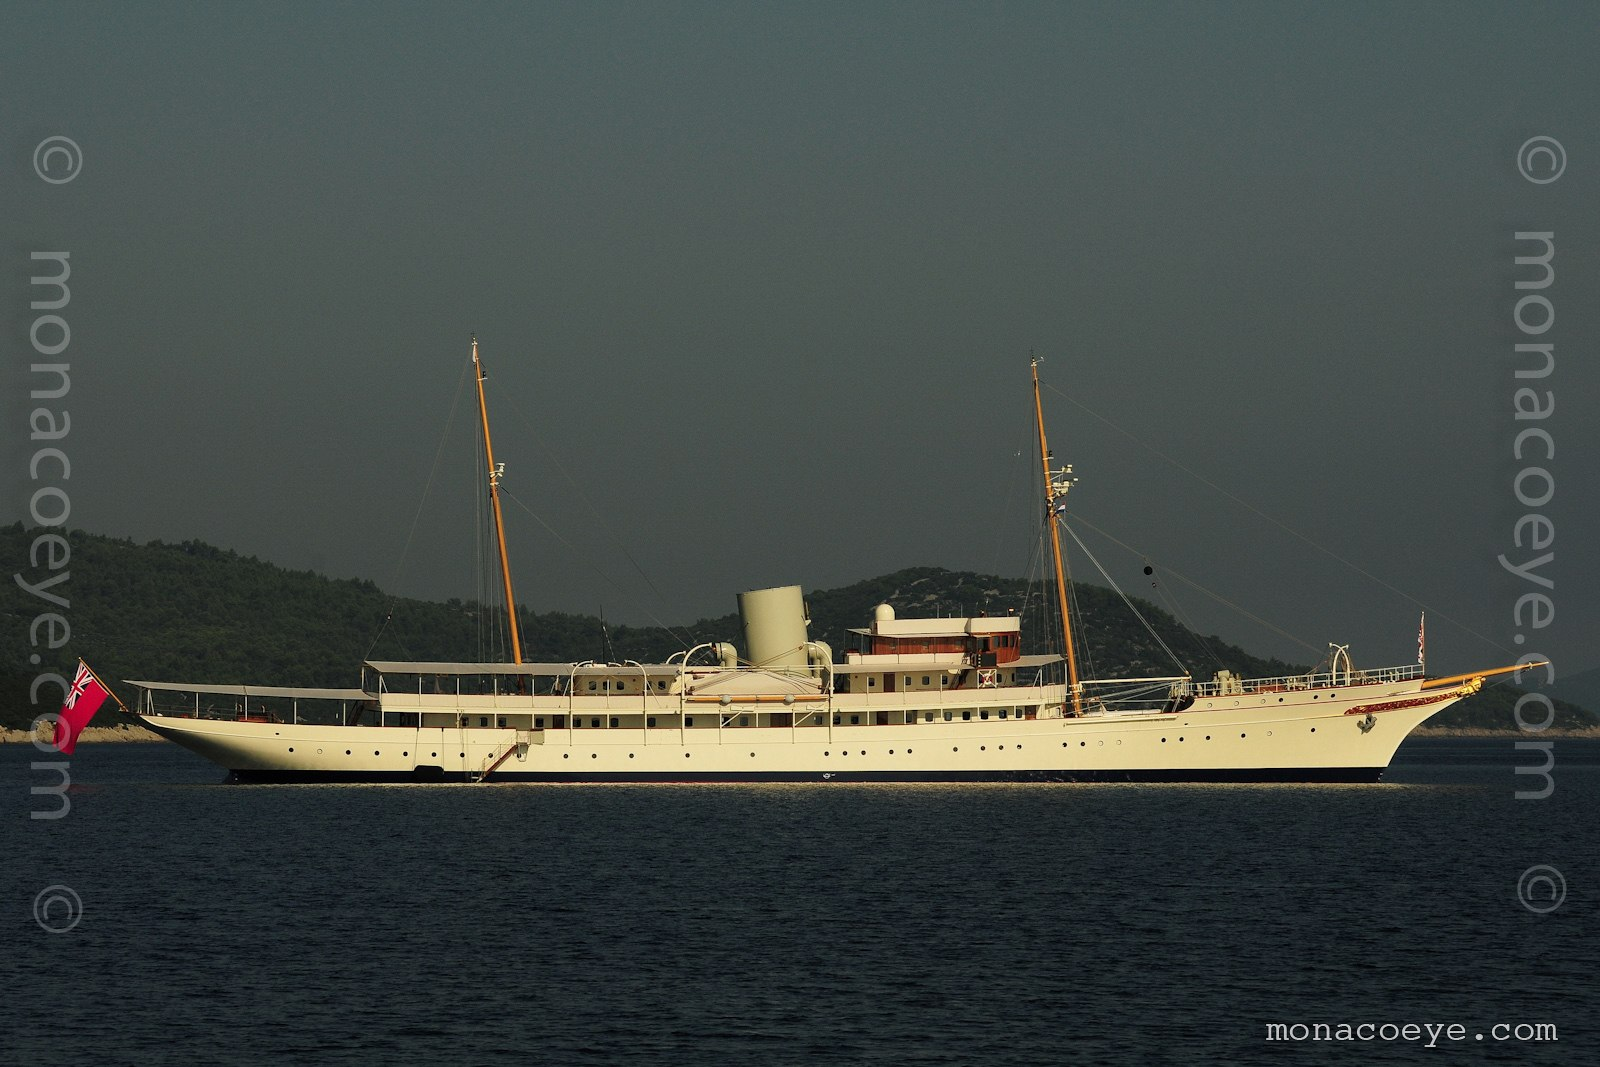 Nahlin yacht. Built by John Brown in 1930, 91 metres, architect GL Watson, recently restored